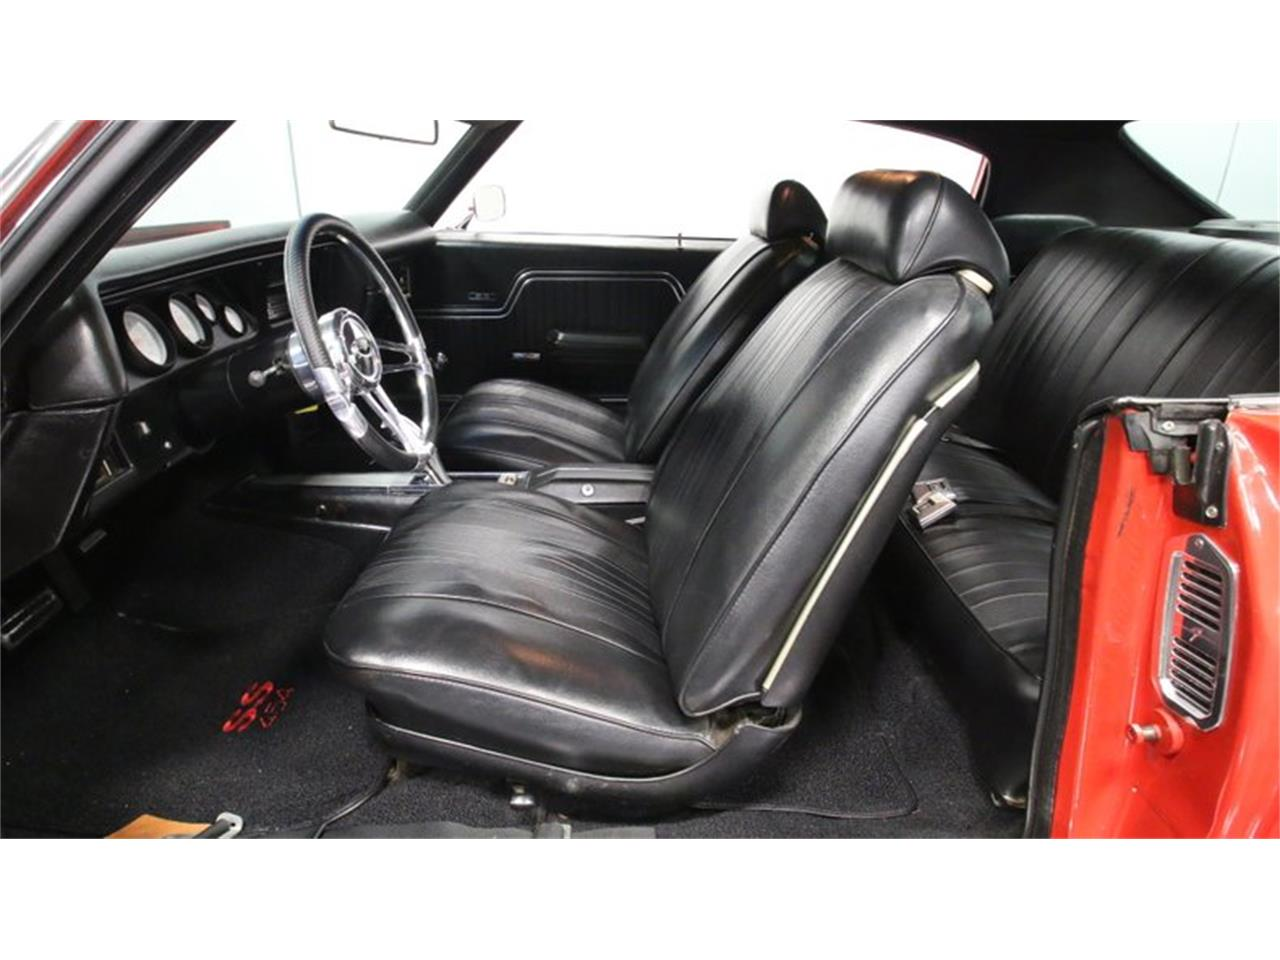 Large Picture of 1970 Chevelle located in Georgia - $52,995.00 Offered by Streetside Classics - Atlanta - PIB4